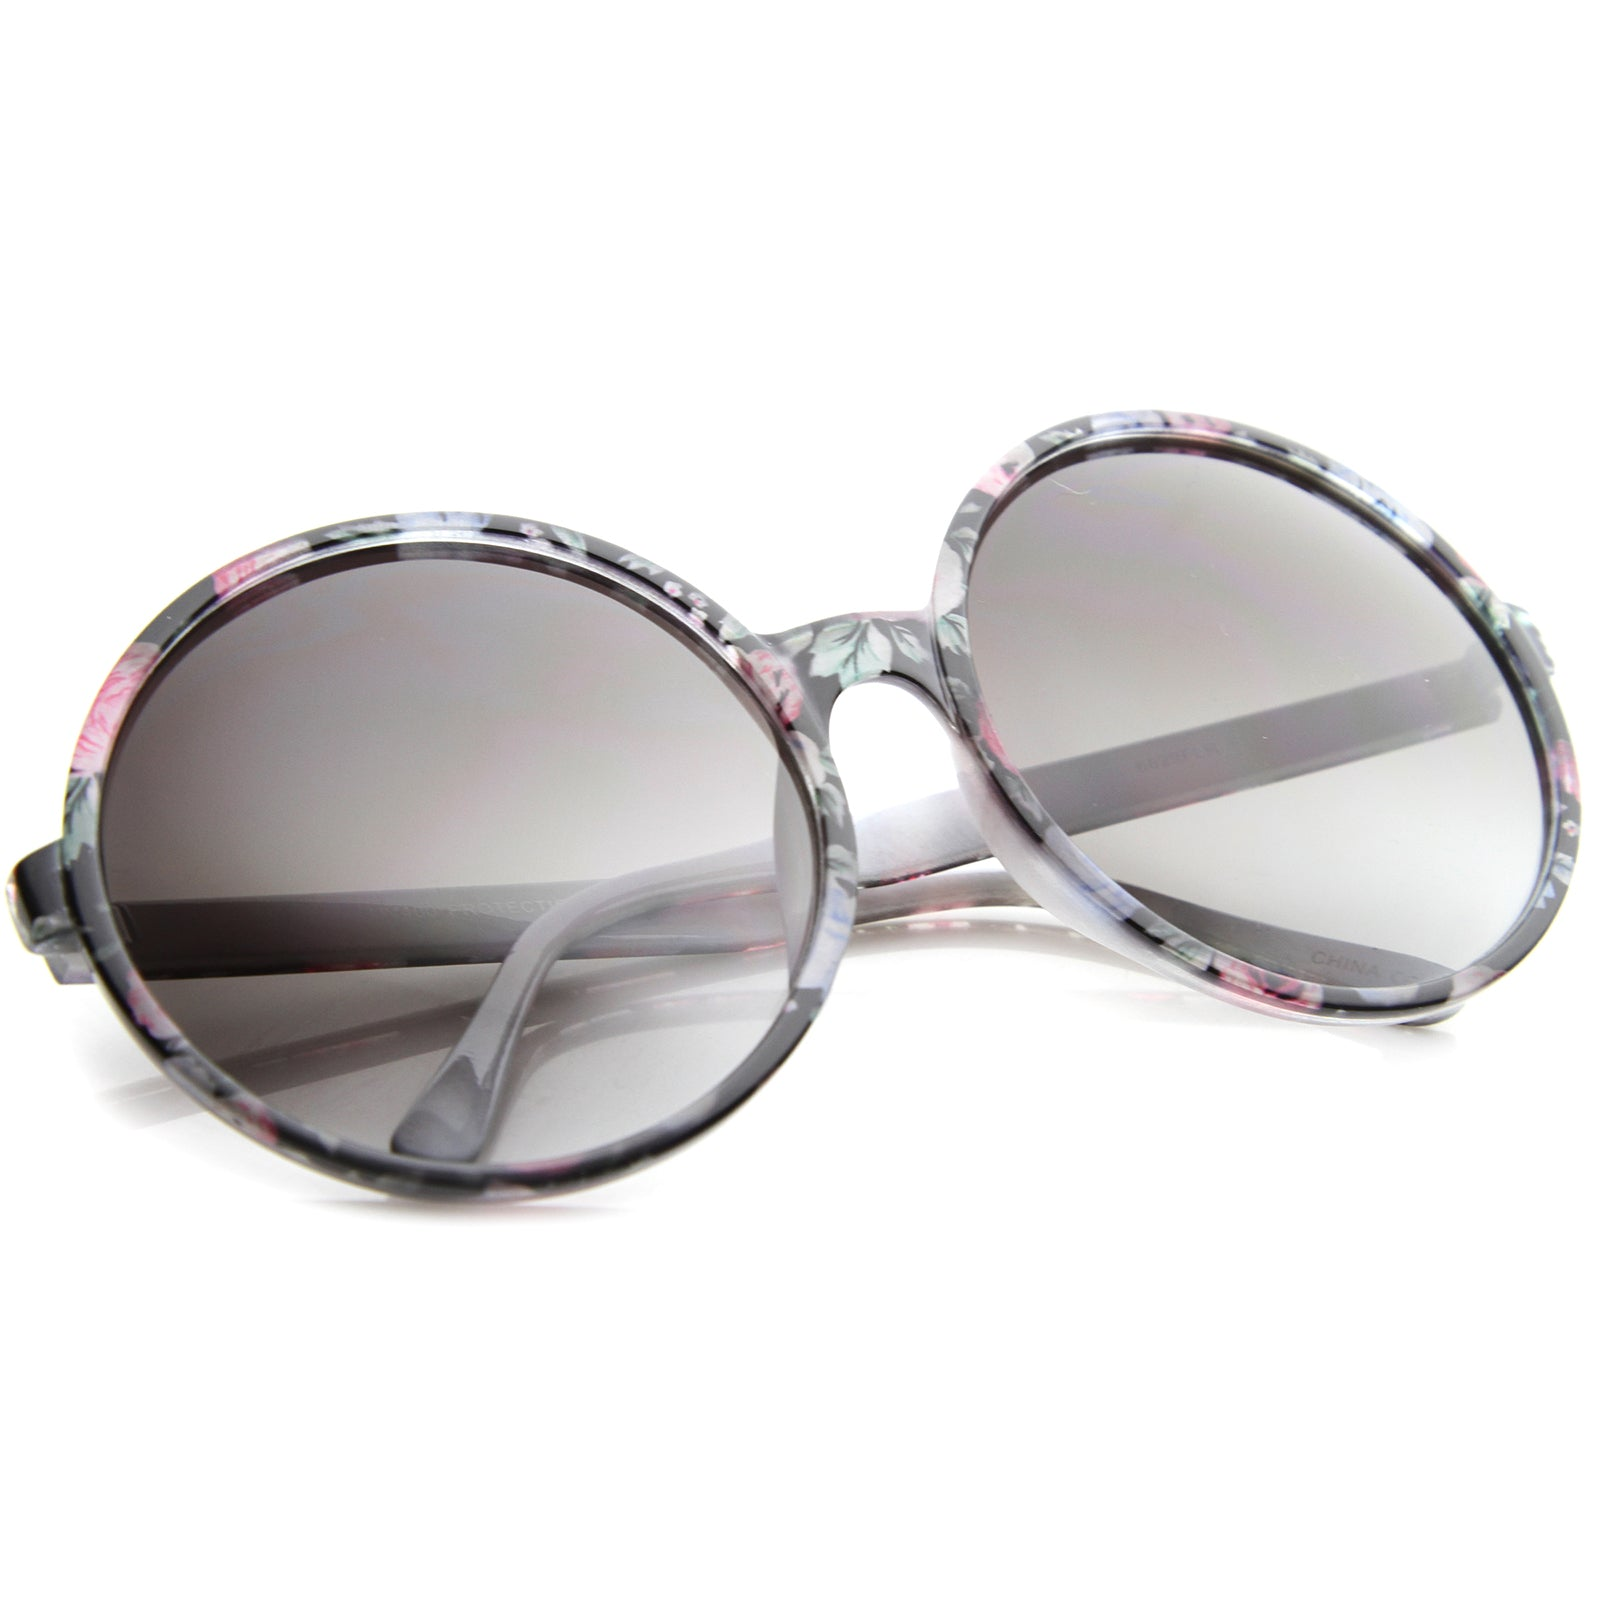 Women's Fashion Floral Print Gradient Lens Oversize Round Sunglasses 66mm - sunglass.la - 4